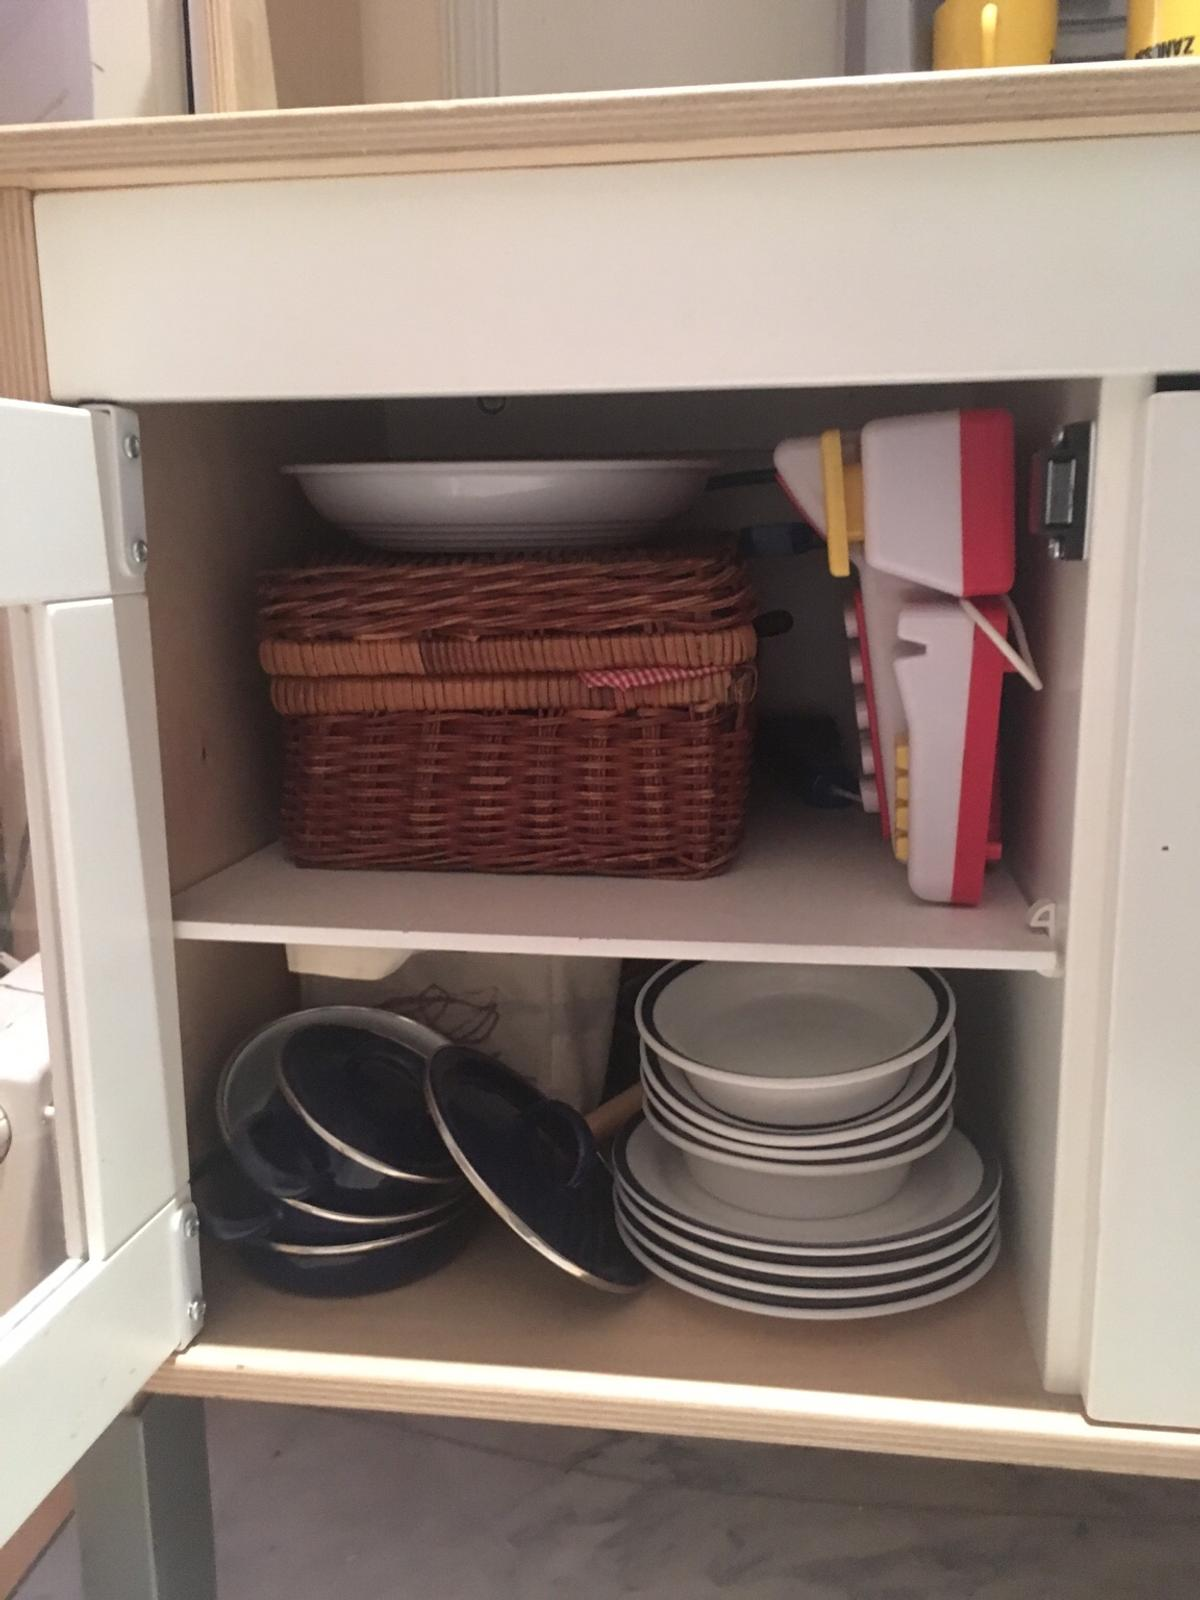 Cucina gioco ikea in 00161 Rome for €150.00 for sale - Shpock